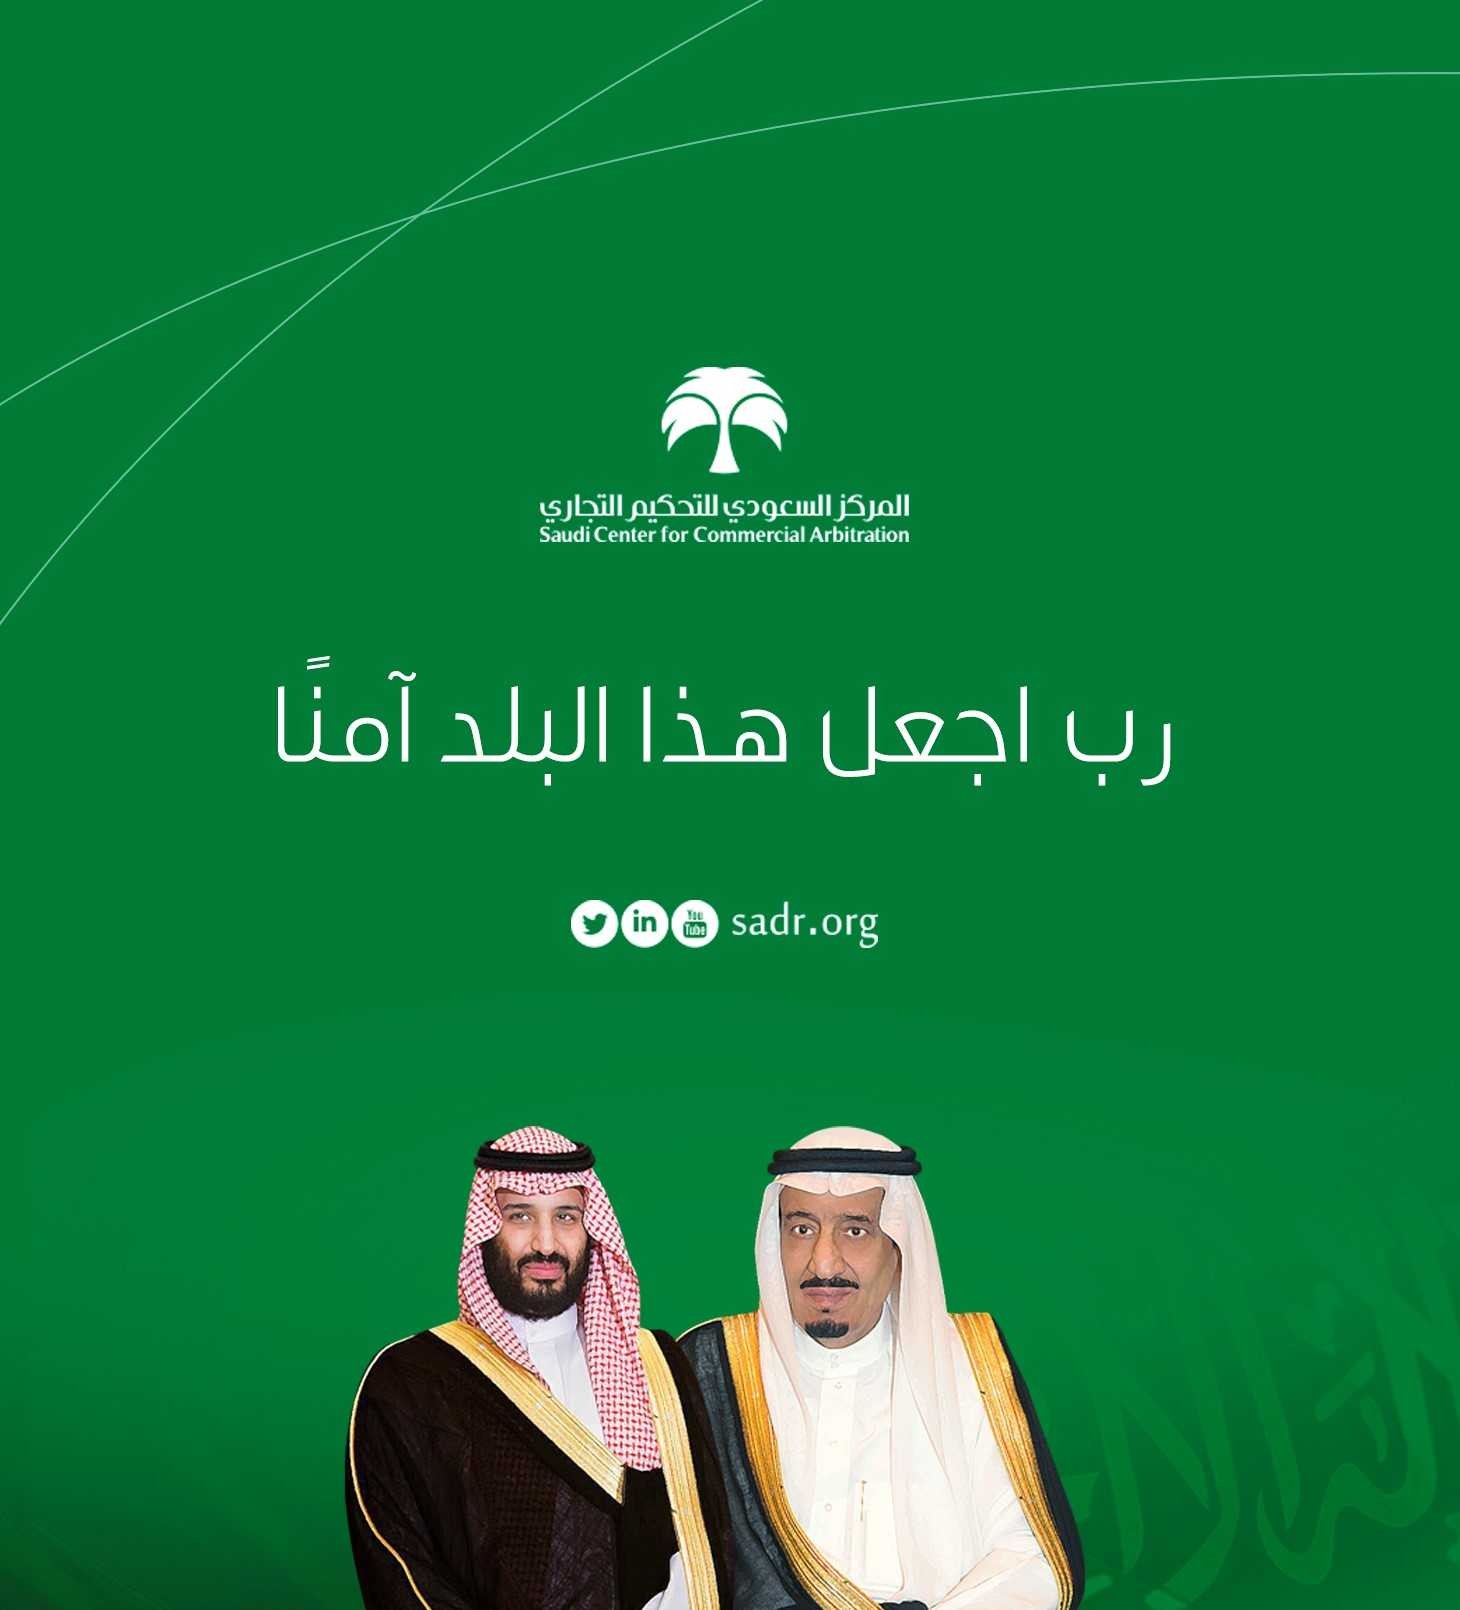 Kingdom celebrates 87th National day